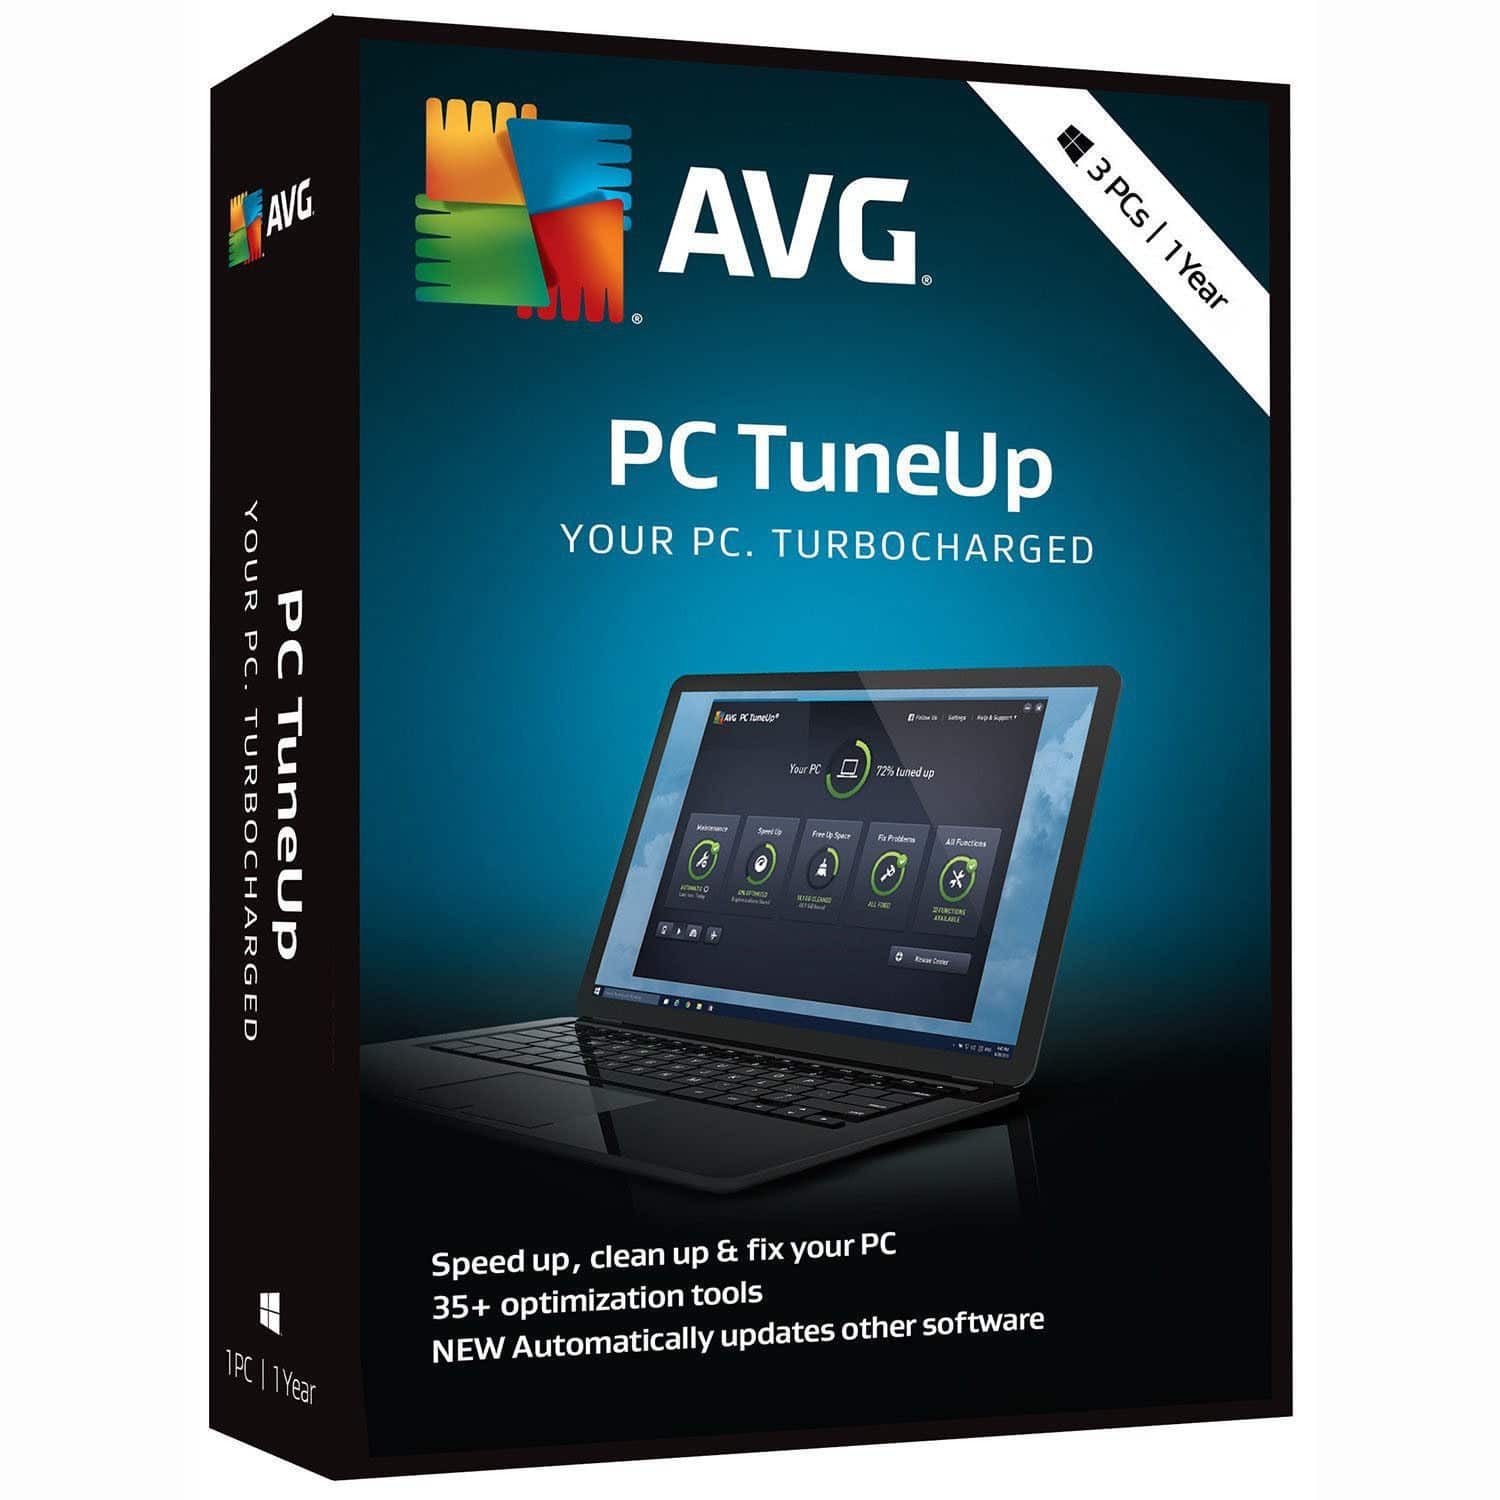 AVG PC TuneUp 21.2.2897 Crack + Product Key Free Download [Latest]